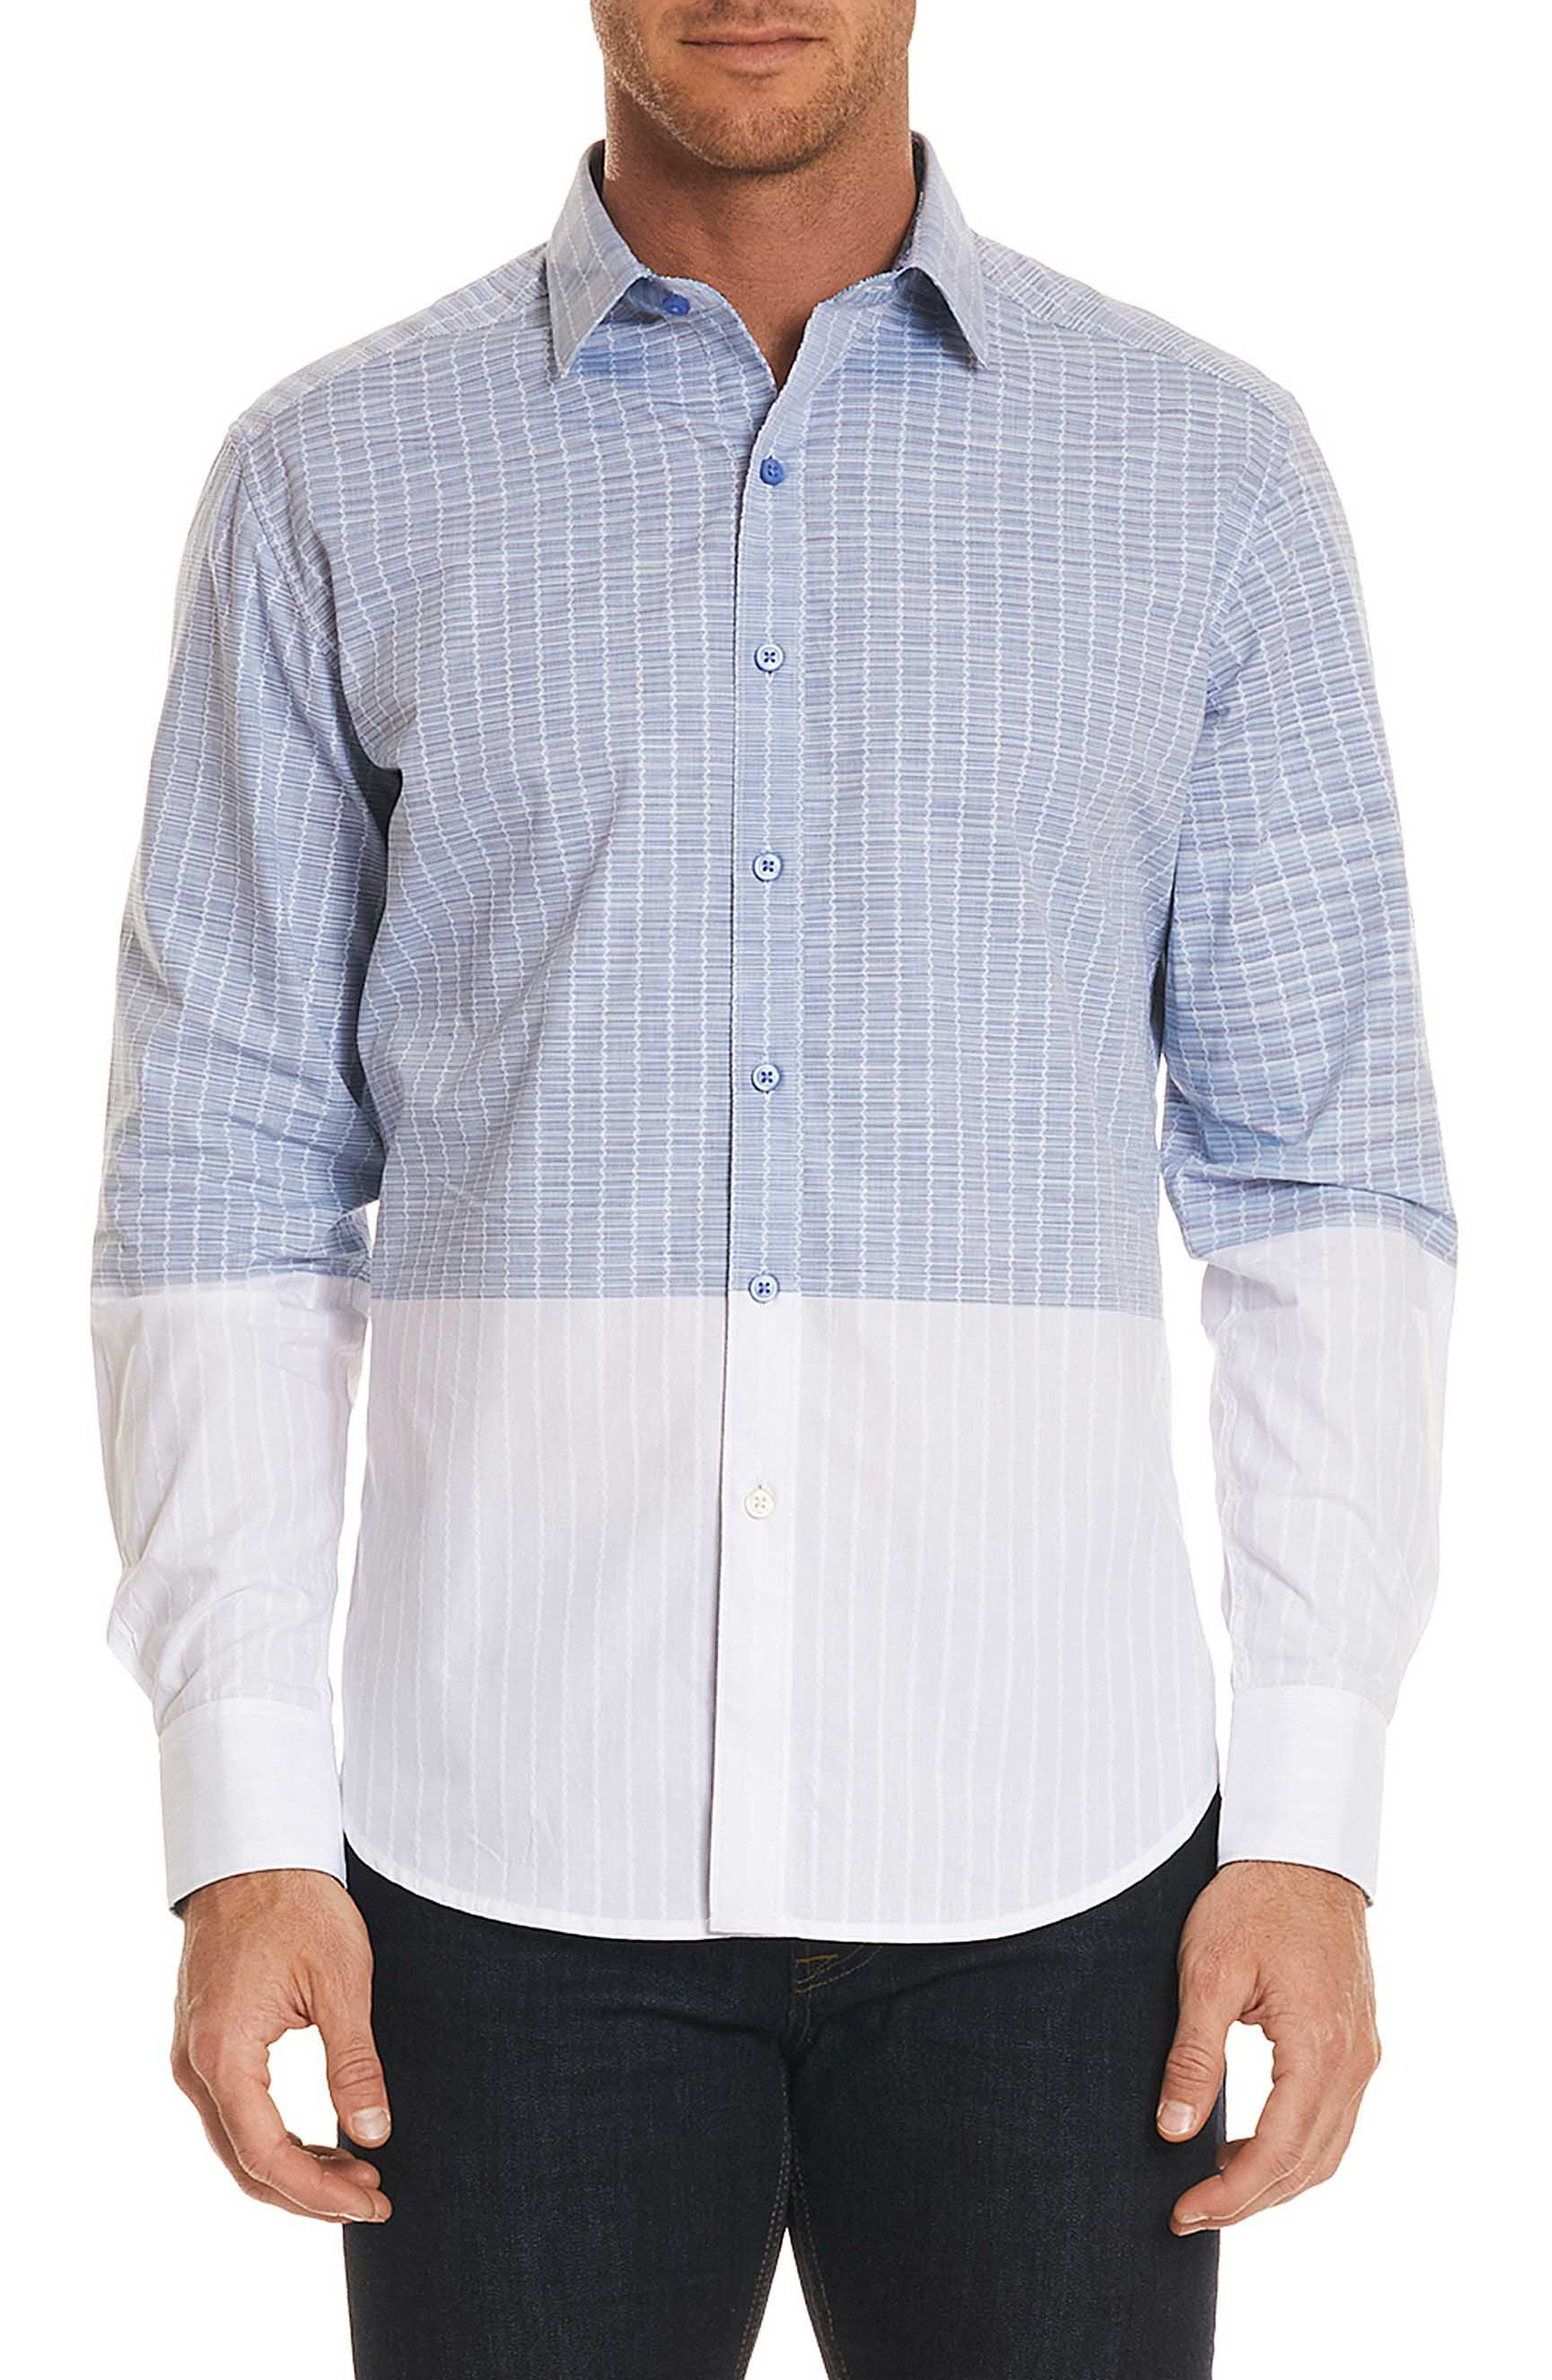 Cano Classic Fit Sport Shirt,                         Main,                         color, 400